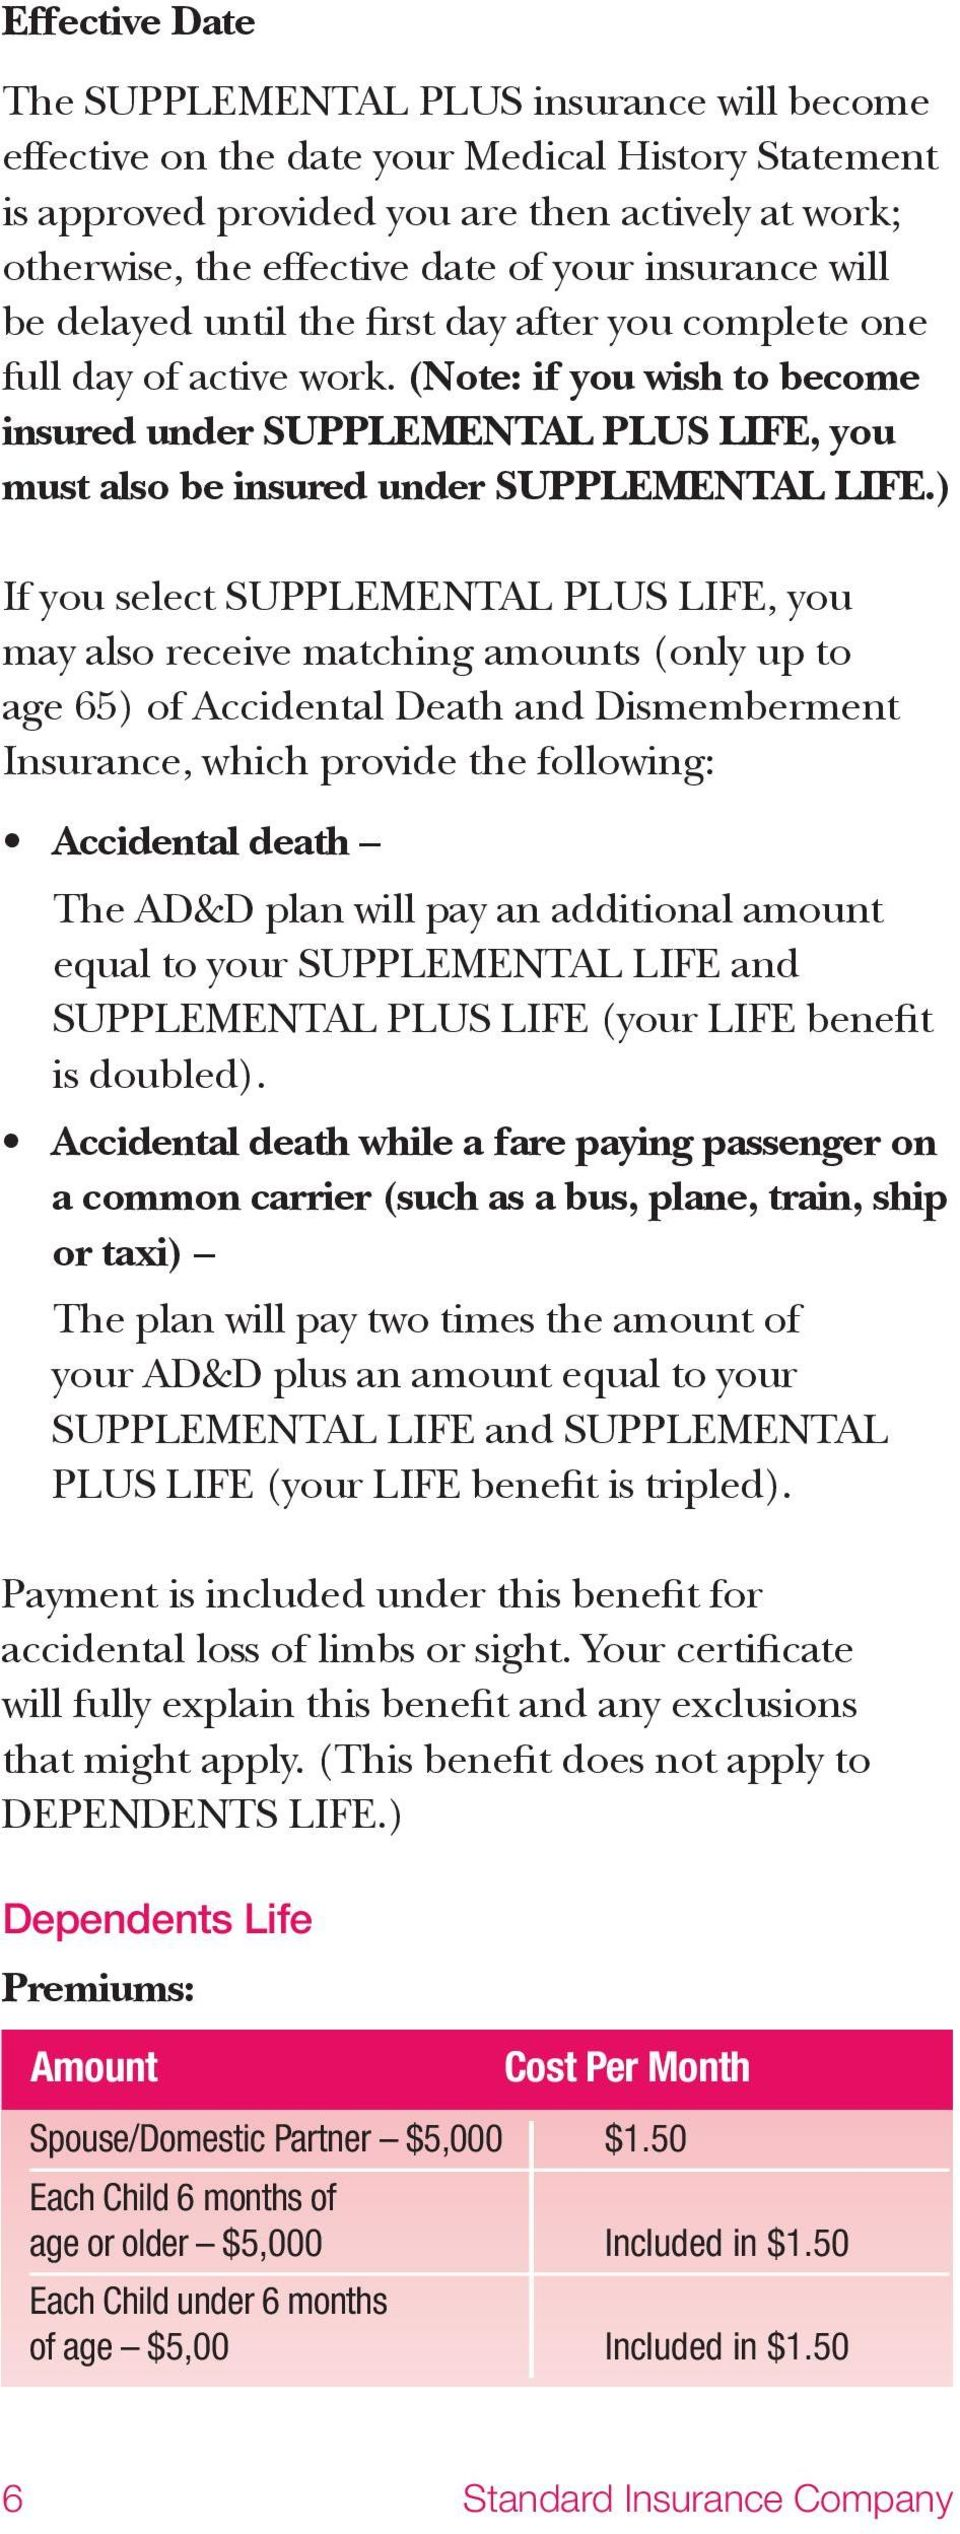 (Note: if you wish to become insured under SUPPLEMENTAL PLUS LIFE, you must also be insured under SUPPLEMENTAL LIFE.